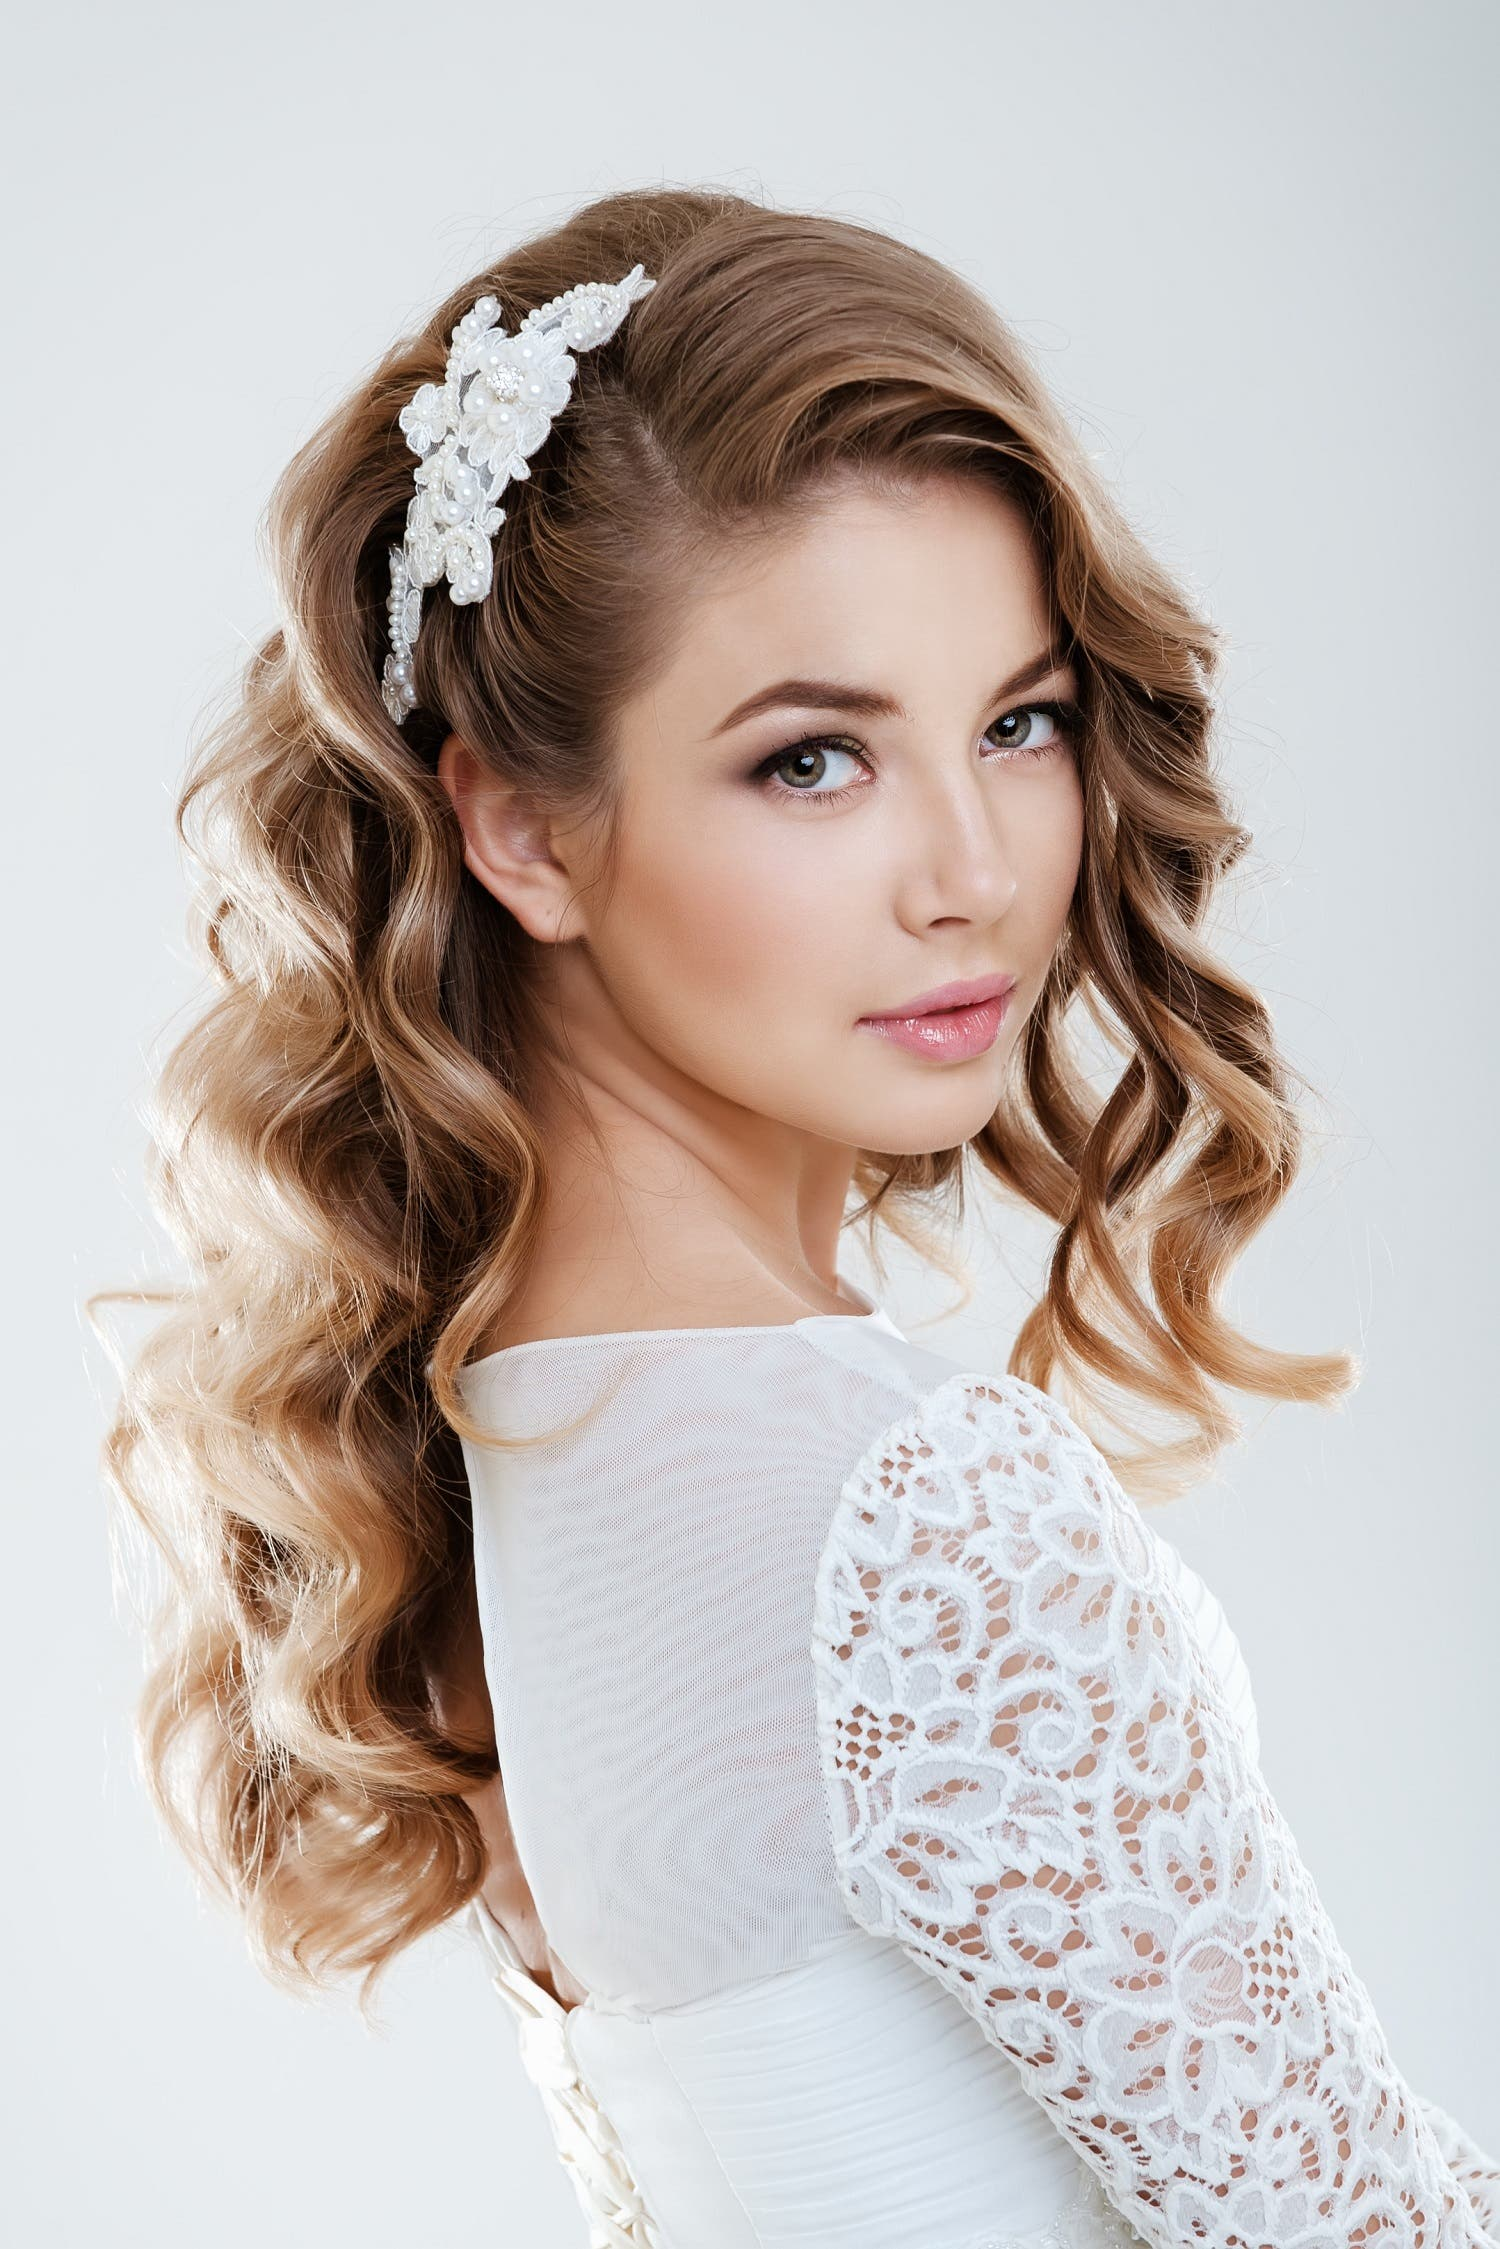 Choosing The Perfect Hairstyle To Match Your Wedding Dress Al - Hairstyle with wedding gown